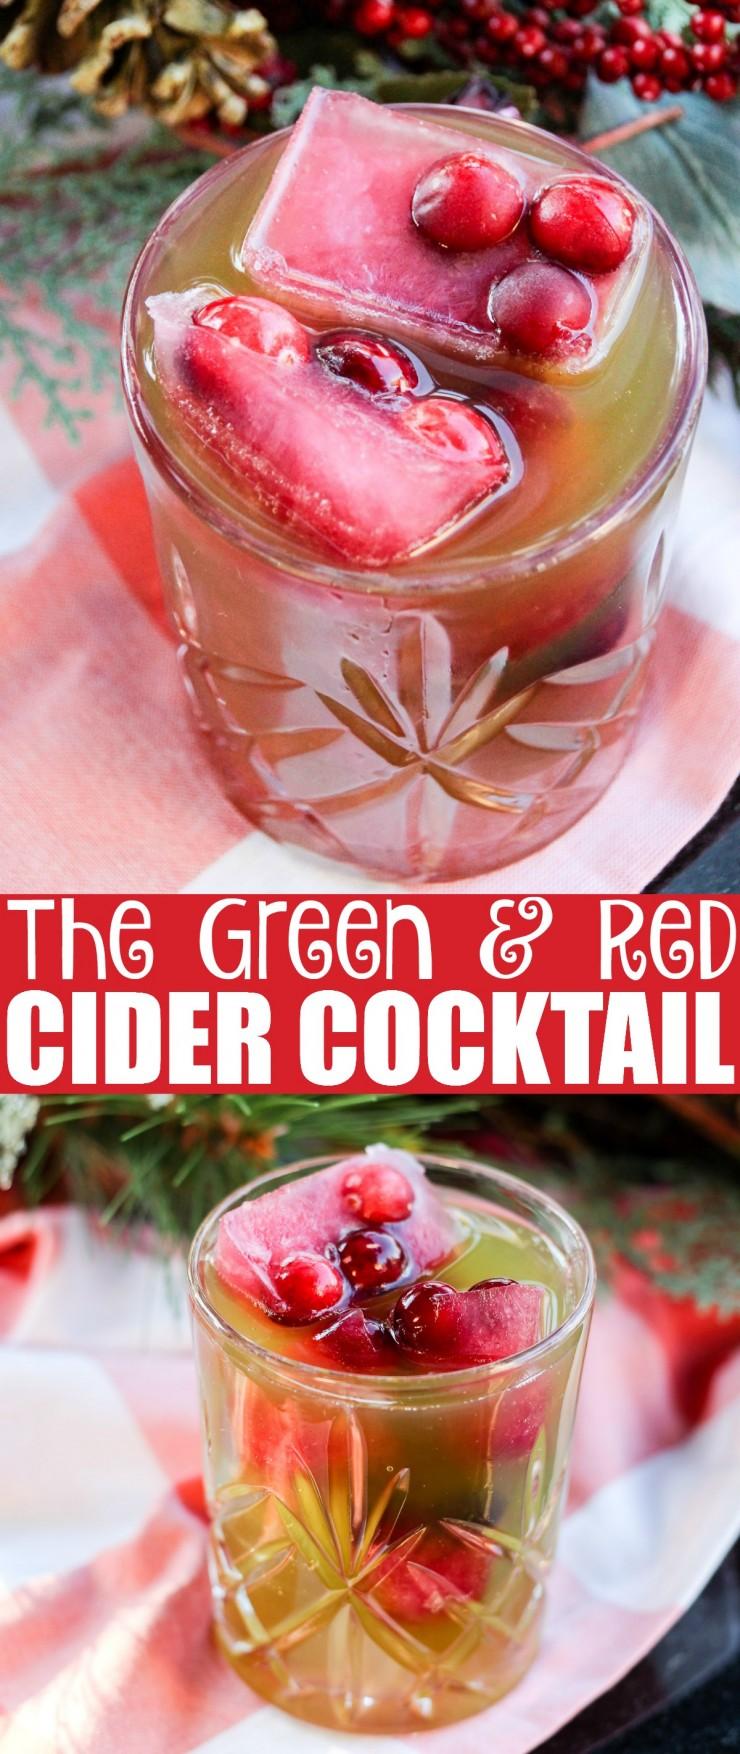 This The Green & Red Cider Cocktail with Cran-Apple Ice Cubes is a fun and flavourful cocktail perfect for holiday entertaining. Change things up from the usual with this tasty beverage! The red and greeen colours make it the perfect Christmas drink.